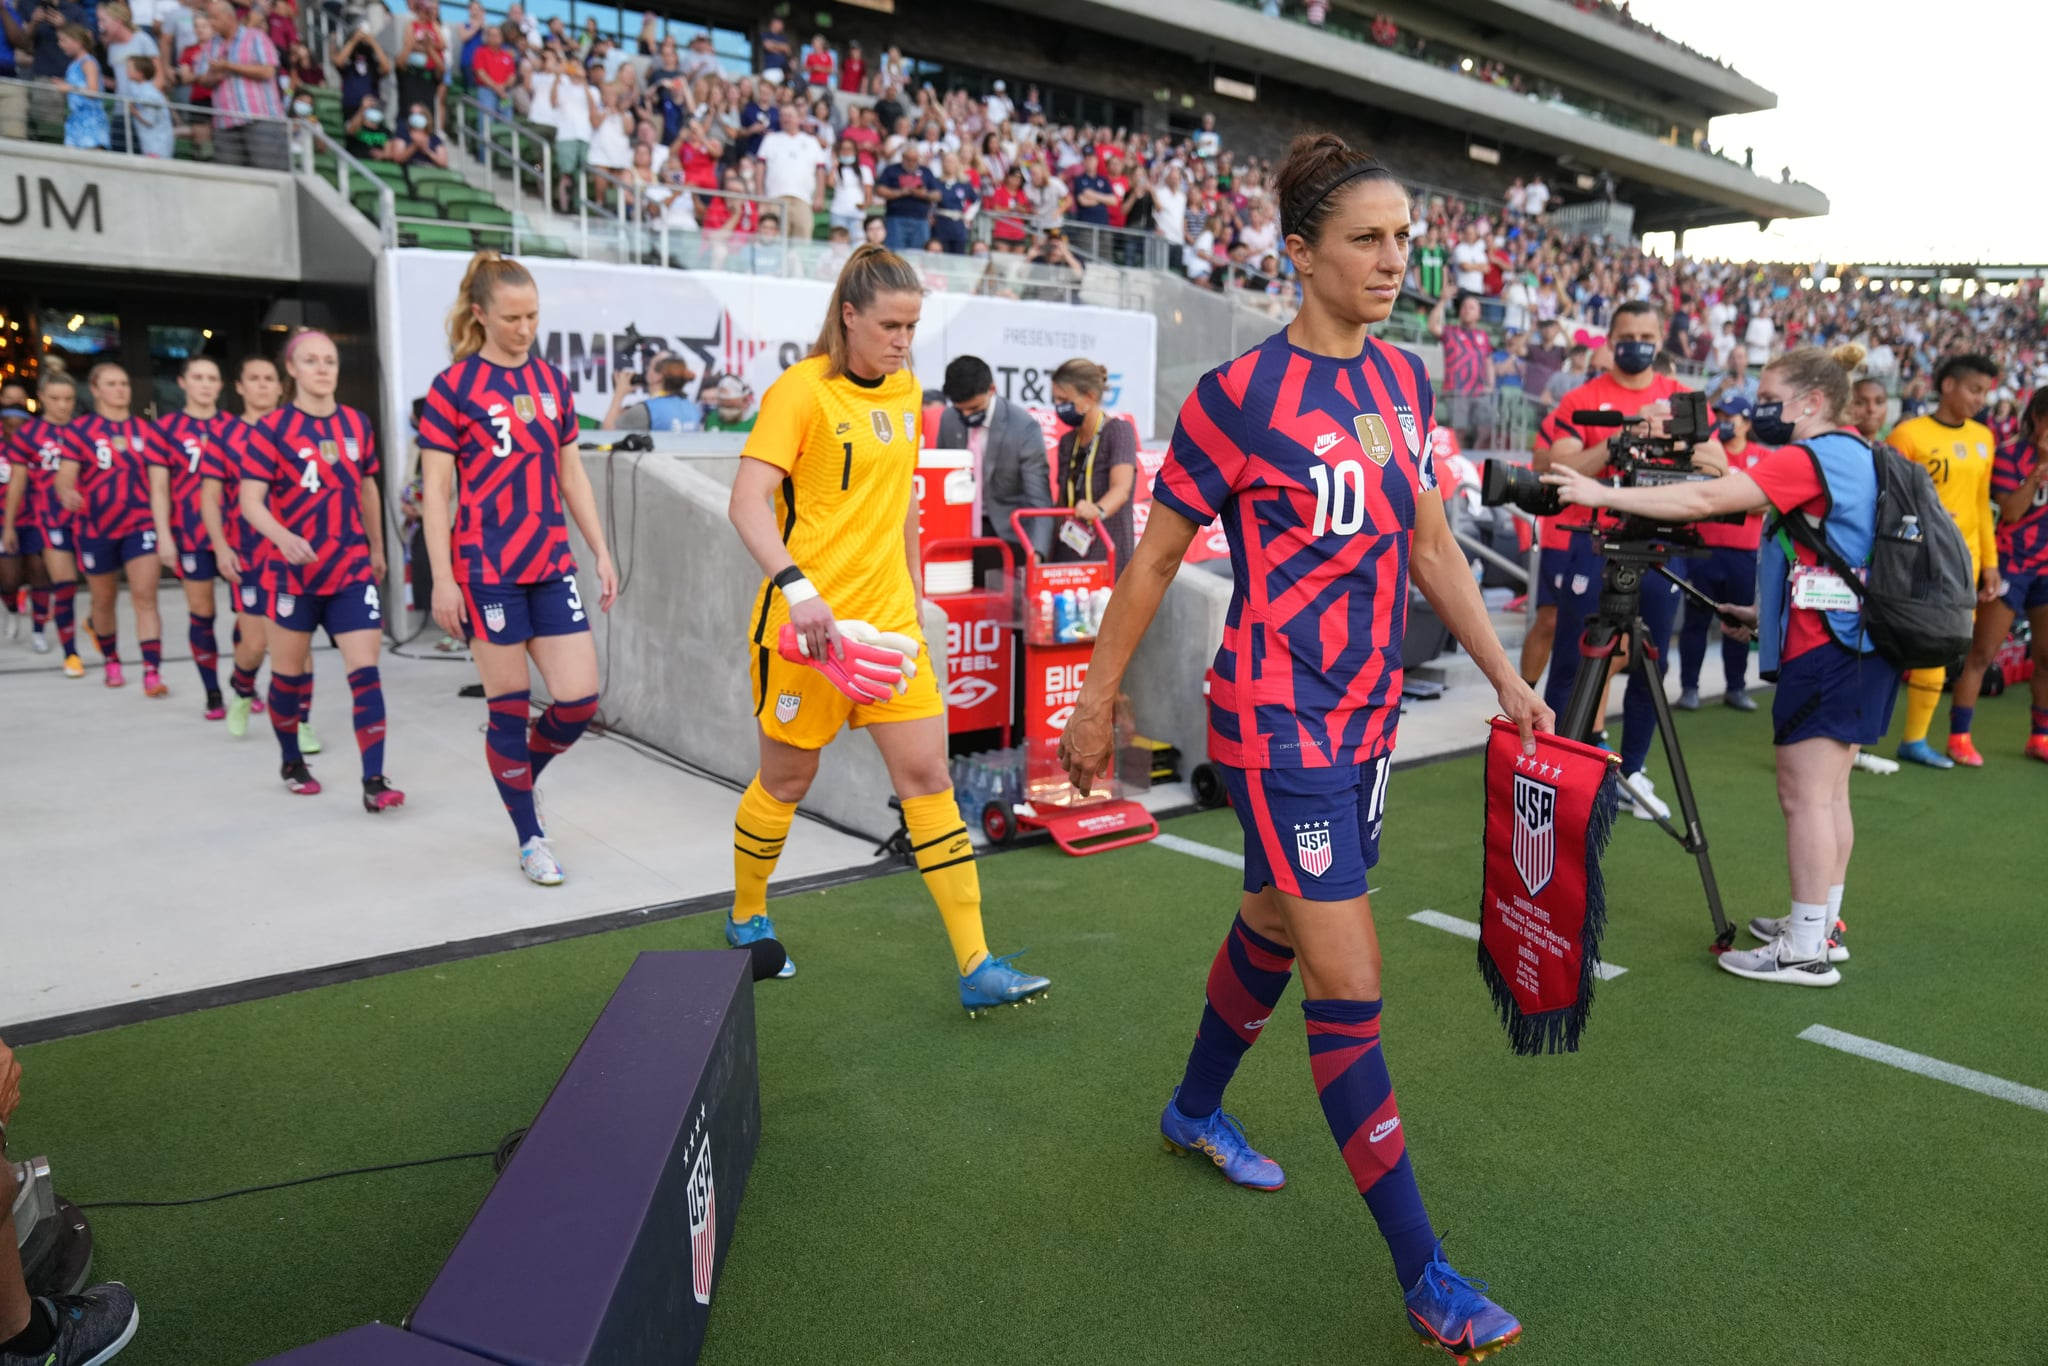 AUSTIN, TX - JUNE 16: Carli Lloyd #10 of the United States receiving her award for 300 career caps during a game between Nigeria and USWNT at Q2 Stadium on June 16, 2021 in Austin, Texas. (Photo by Brad Smith/ISI Photos/Getty Images)